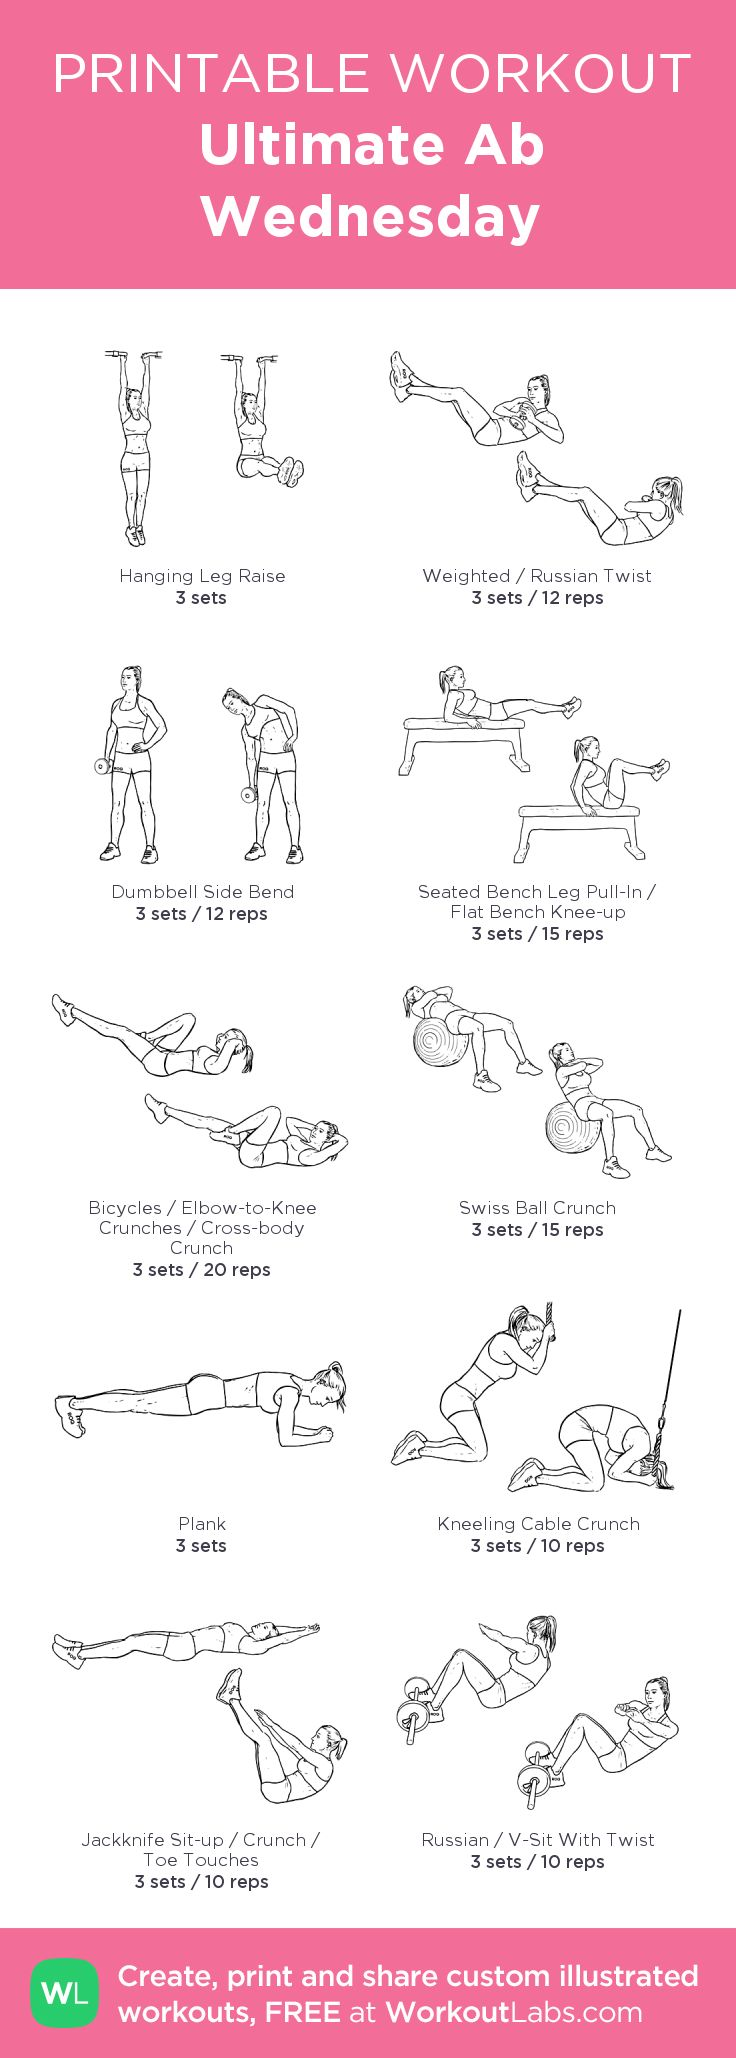 Ultimate Ab Wednesday:my visual workout created at WorkoutLabs.com • Click through to customize and download as a FREE PDF! #customworkout